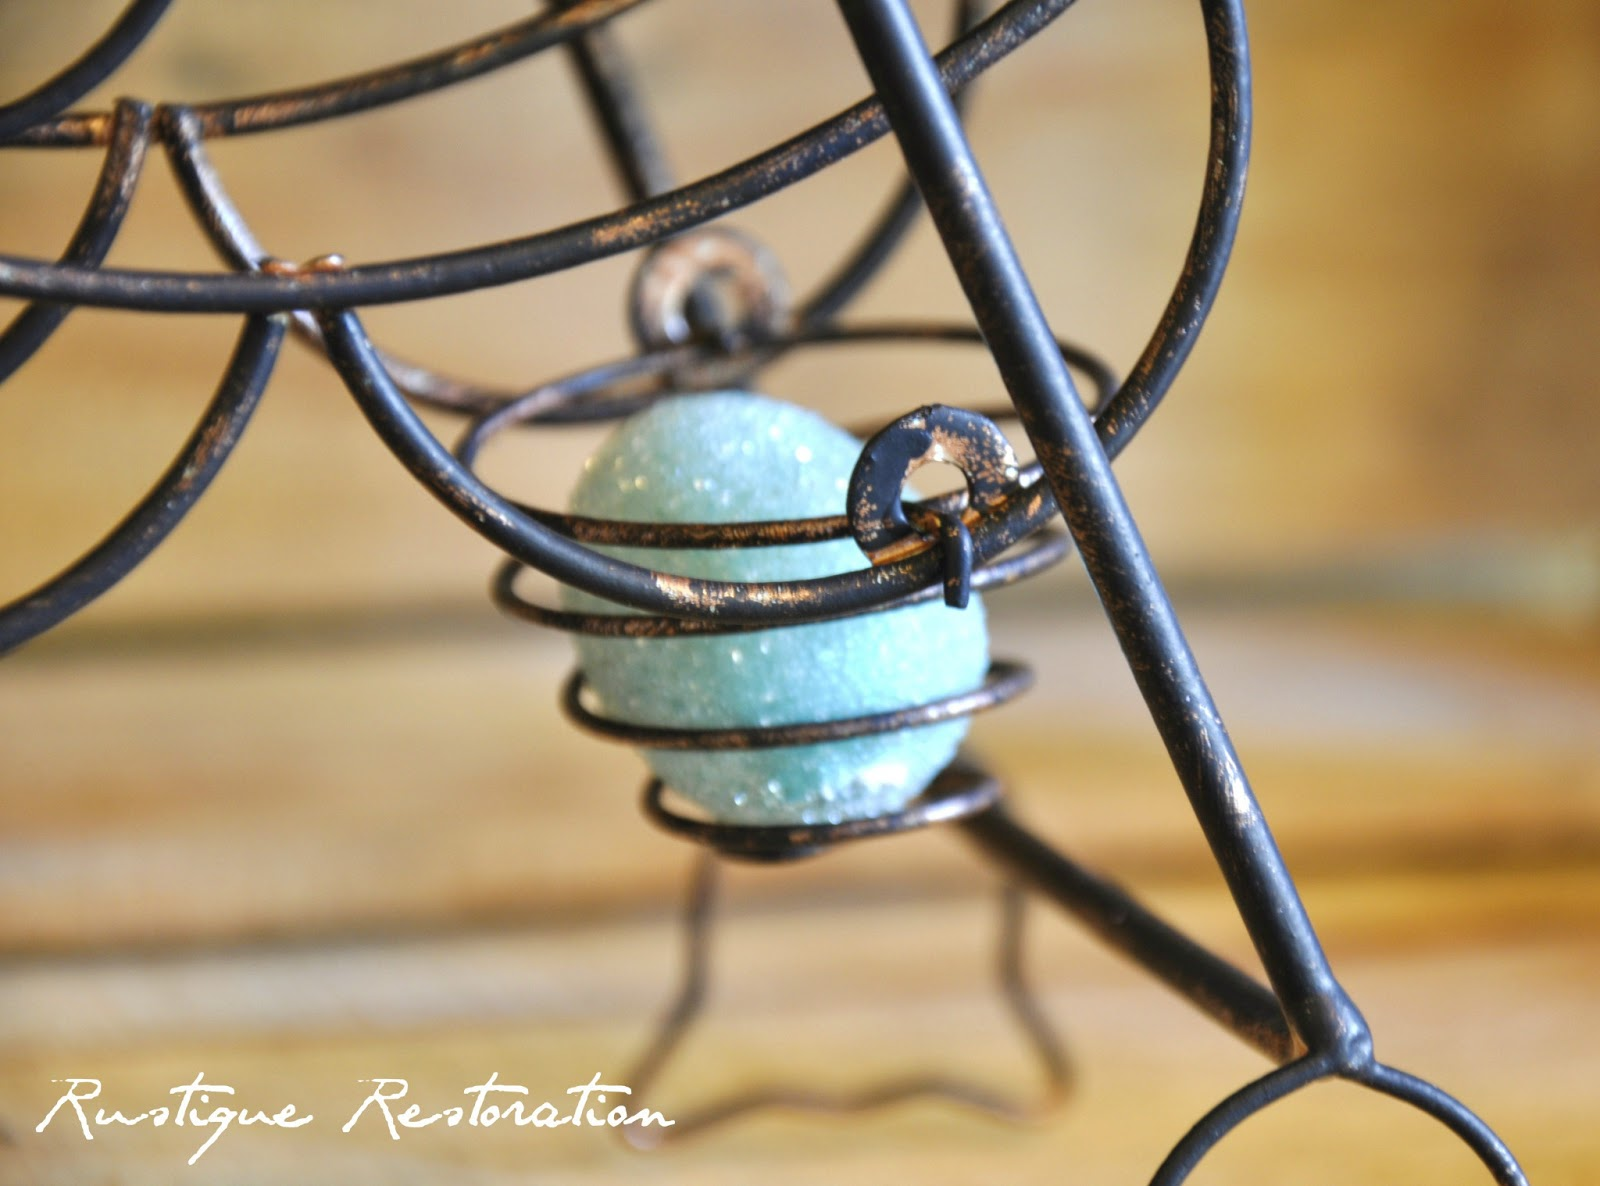 Rustique Restoration: An Easter Inspired Ferris Wheel